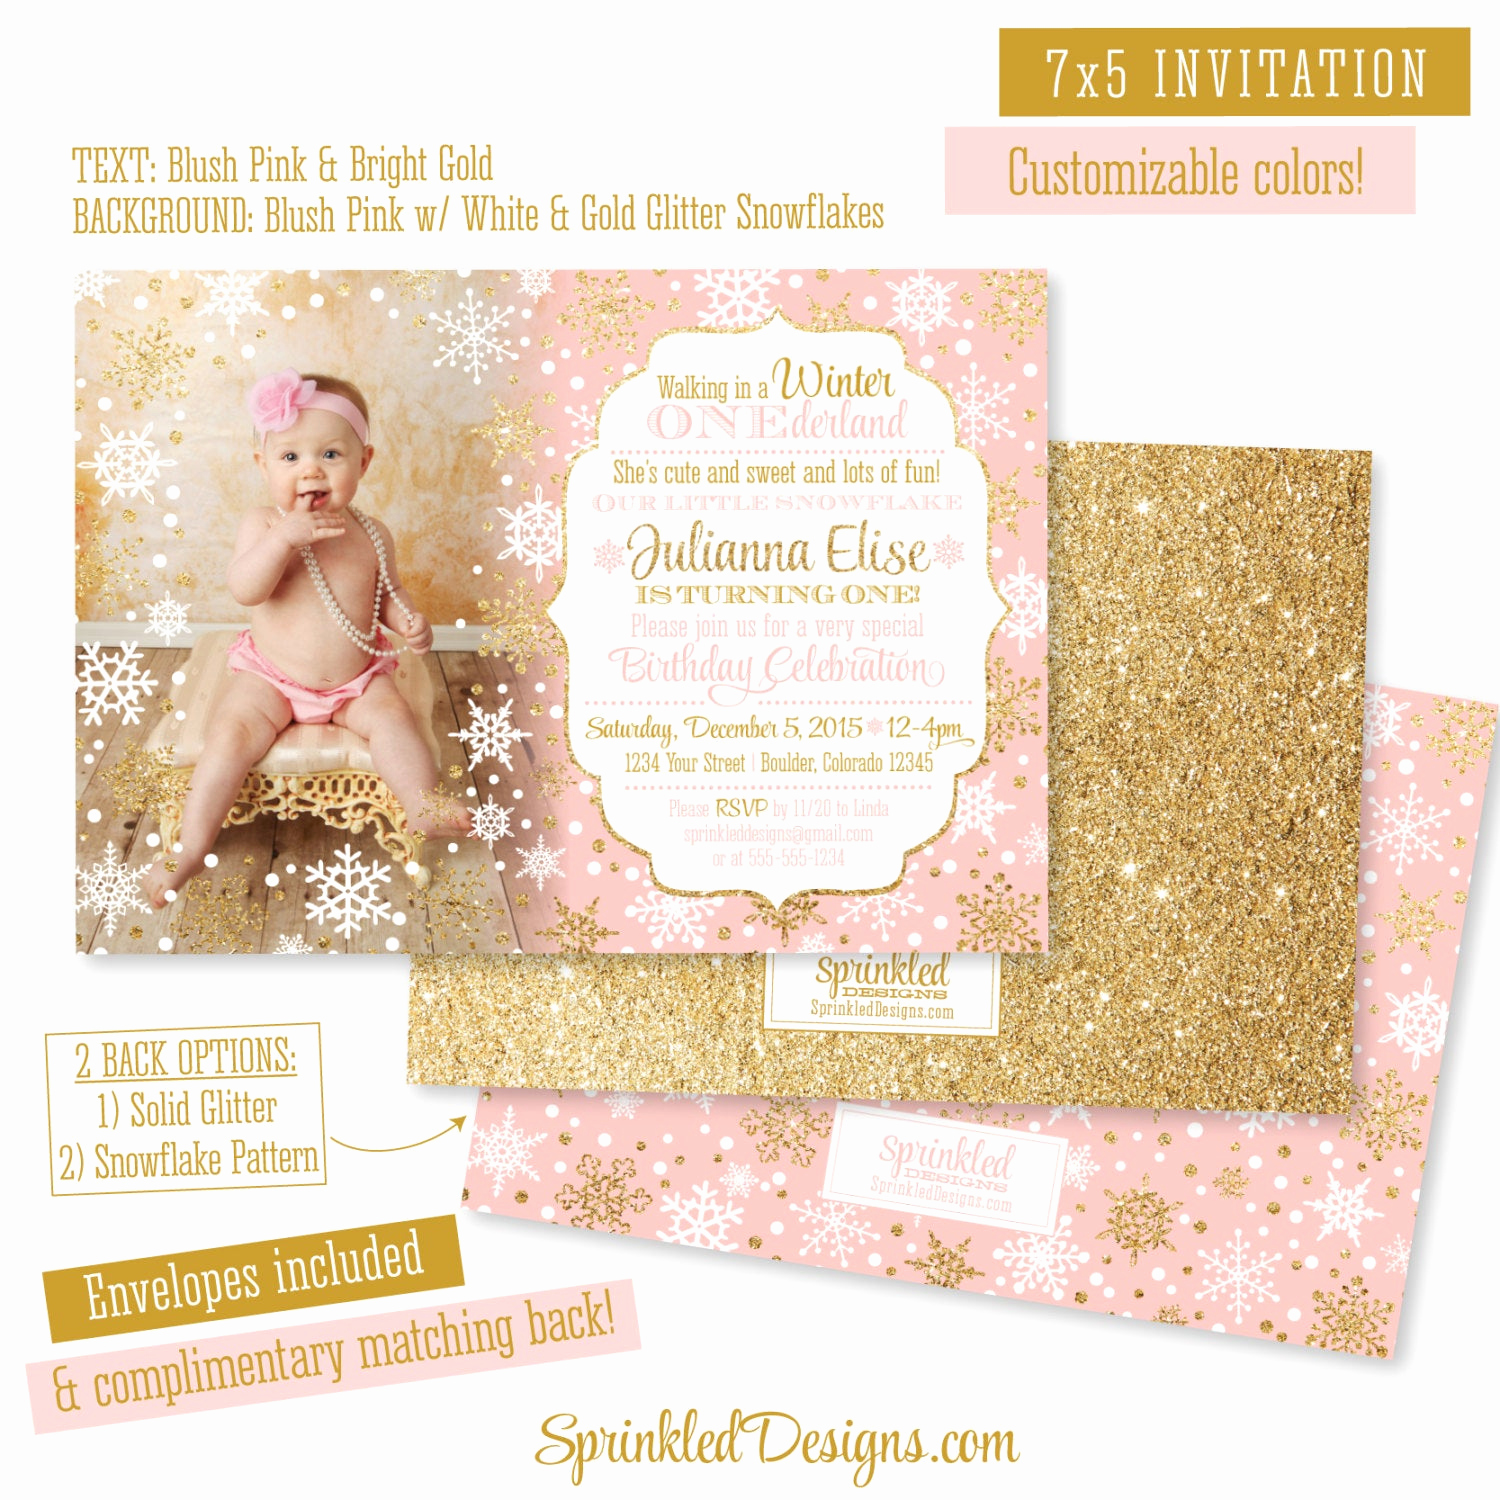 Winter One Derland Invitation Elegant Winter Onederland Invitation Girl Card Blush Pink Gold